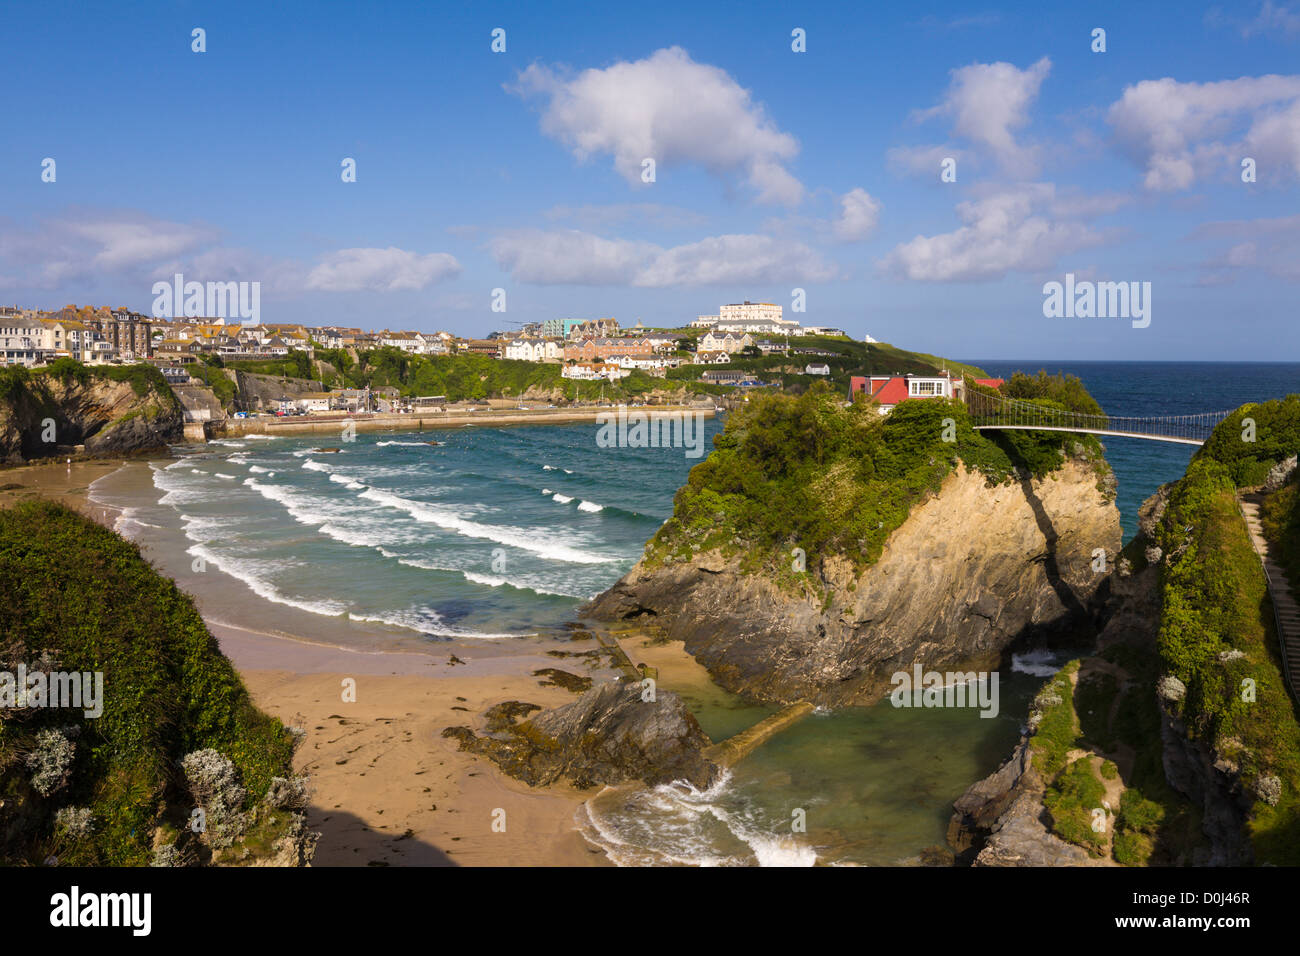 Overall view of Towan beach and waves, Newquay, Cornwall, England - Stock Image